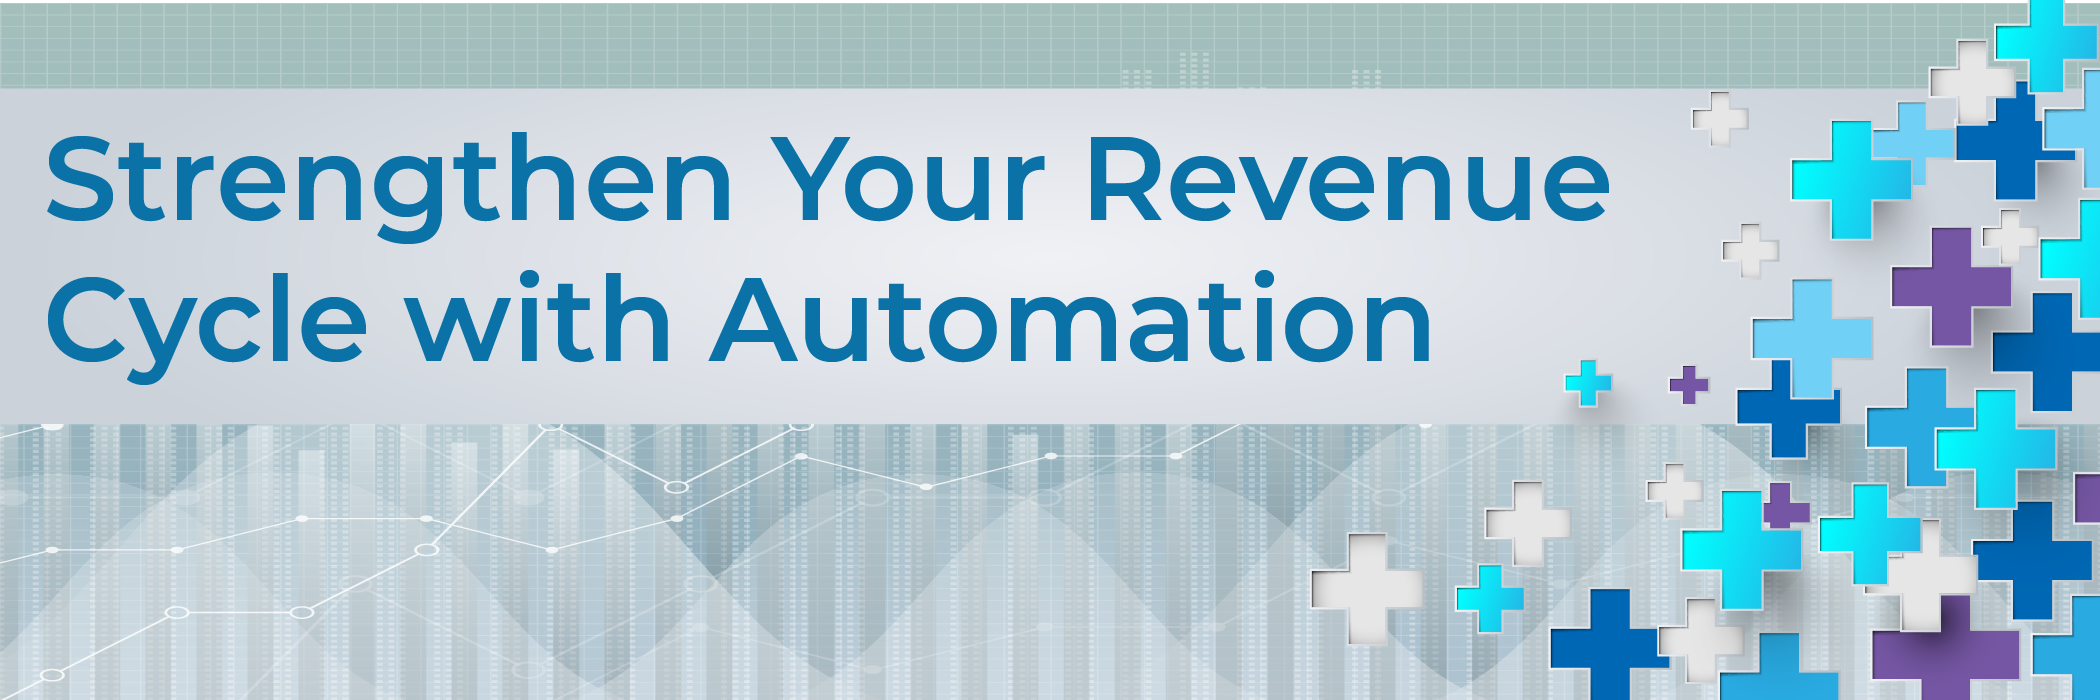 Strengthen Your Revenue Cycle with Automation